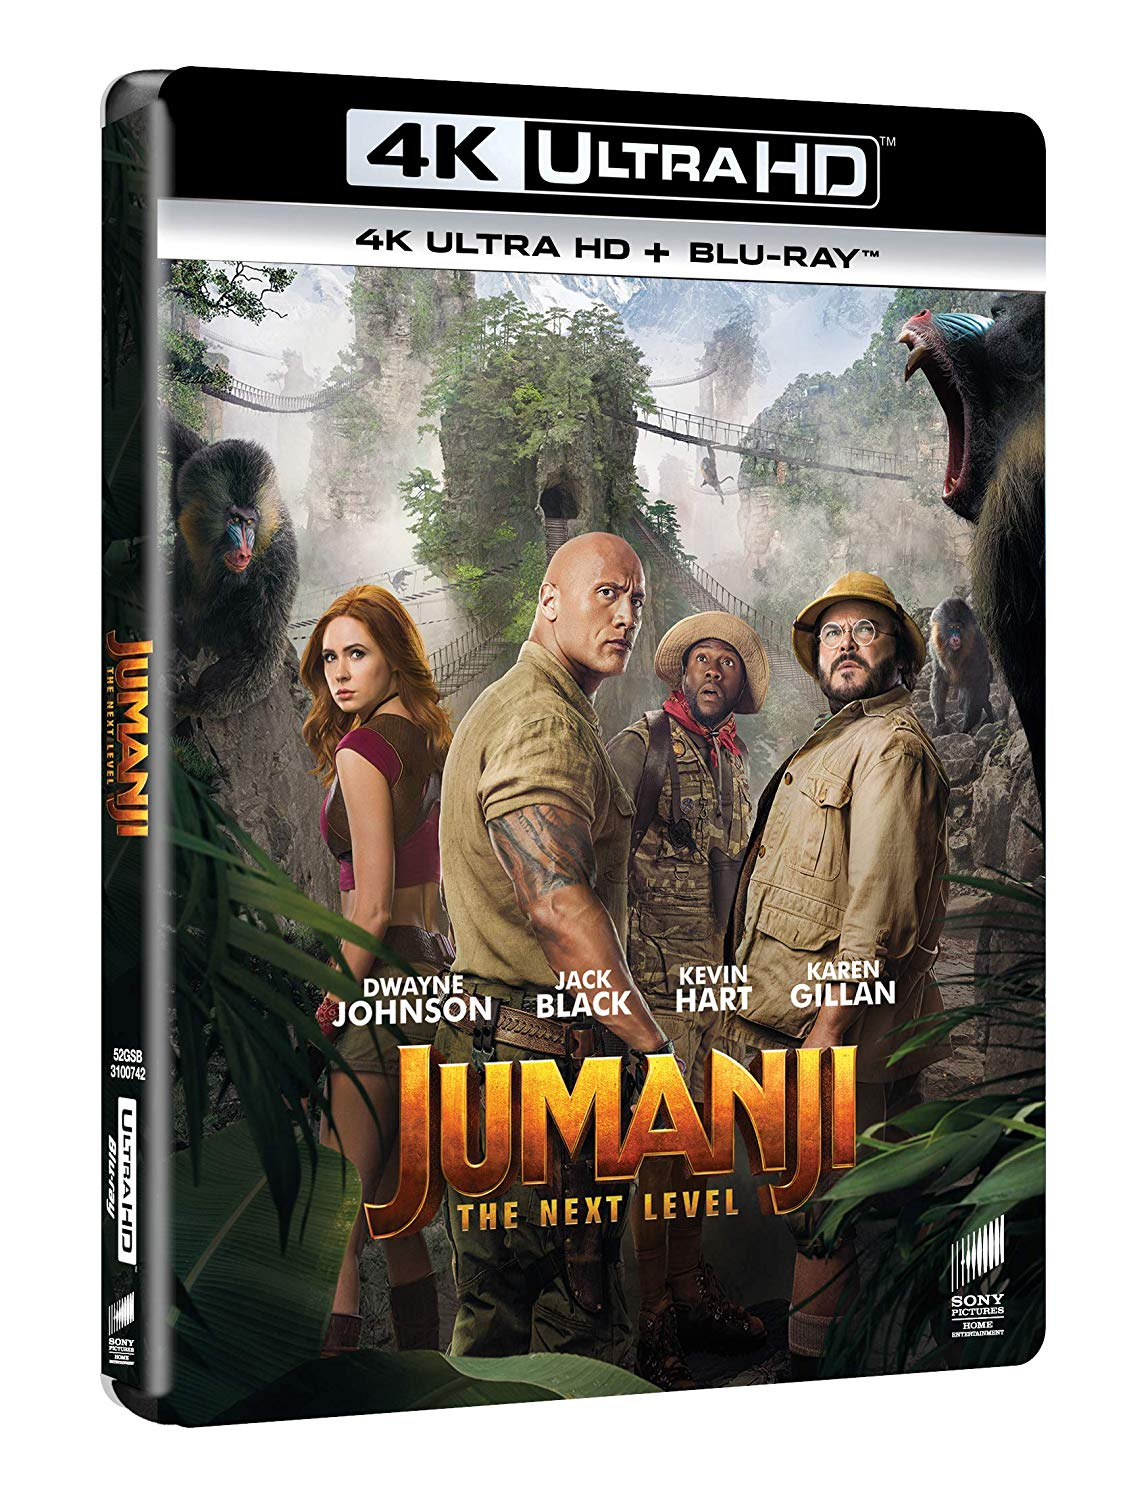 JUMANJI THE NEXT LEVEL (4K UHD+BLU-RAY)